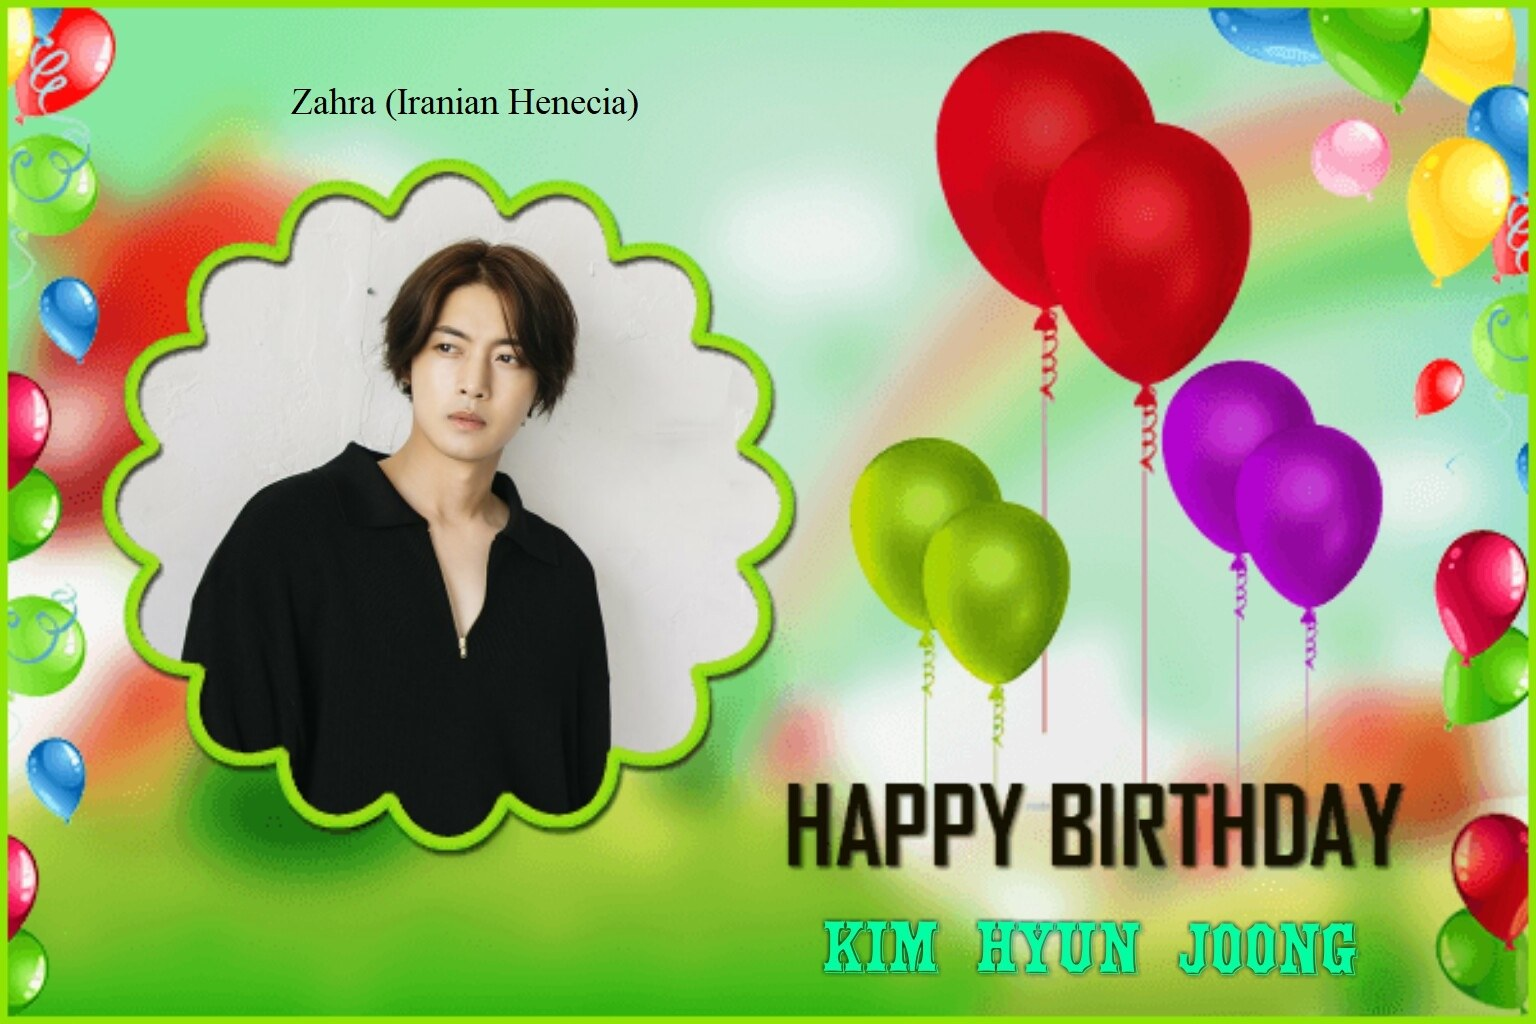 (My Fanart from Happy 32th Birtday of KHJ (20